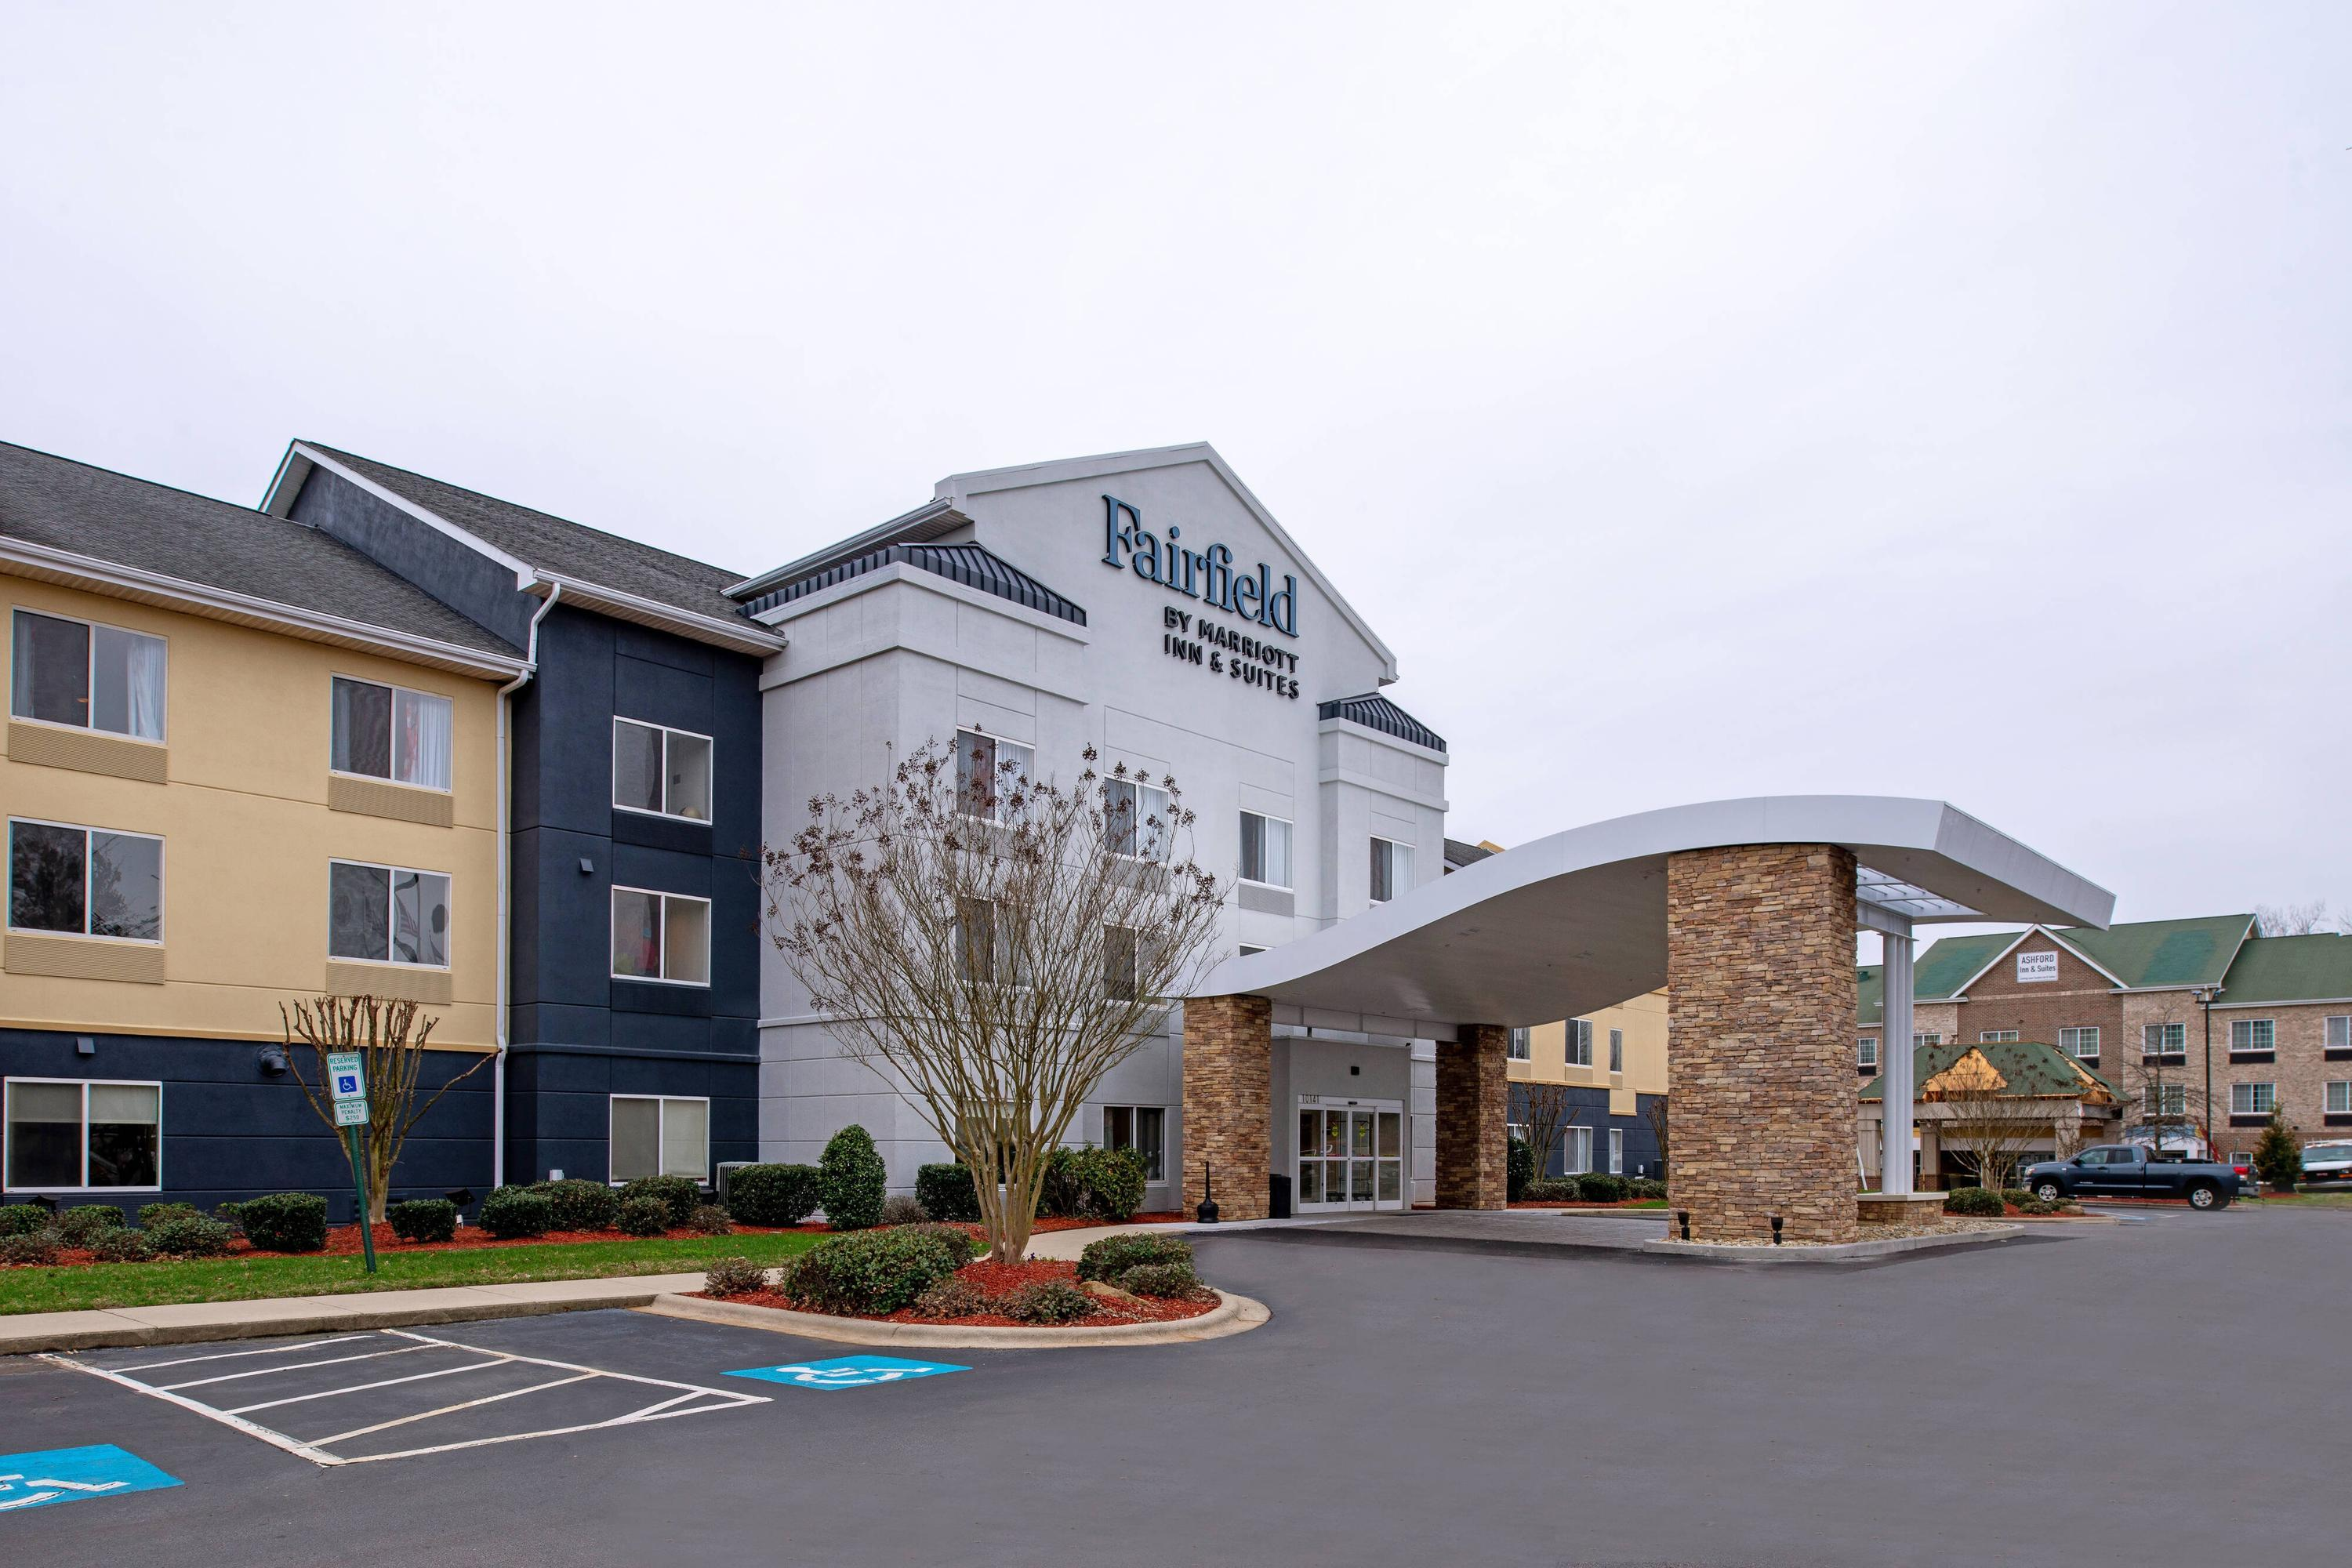 Fairfield Inn & Suites by Marriott High Point Archdale